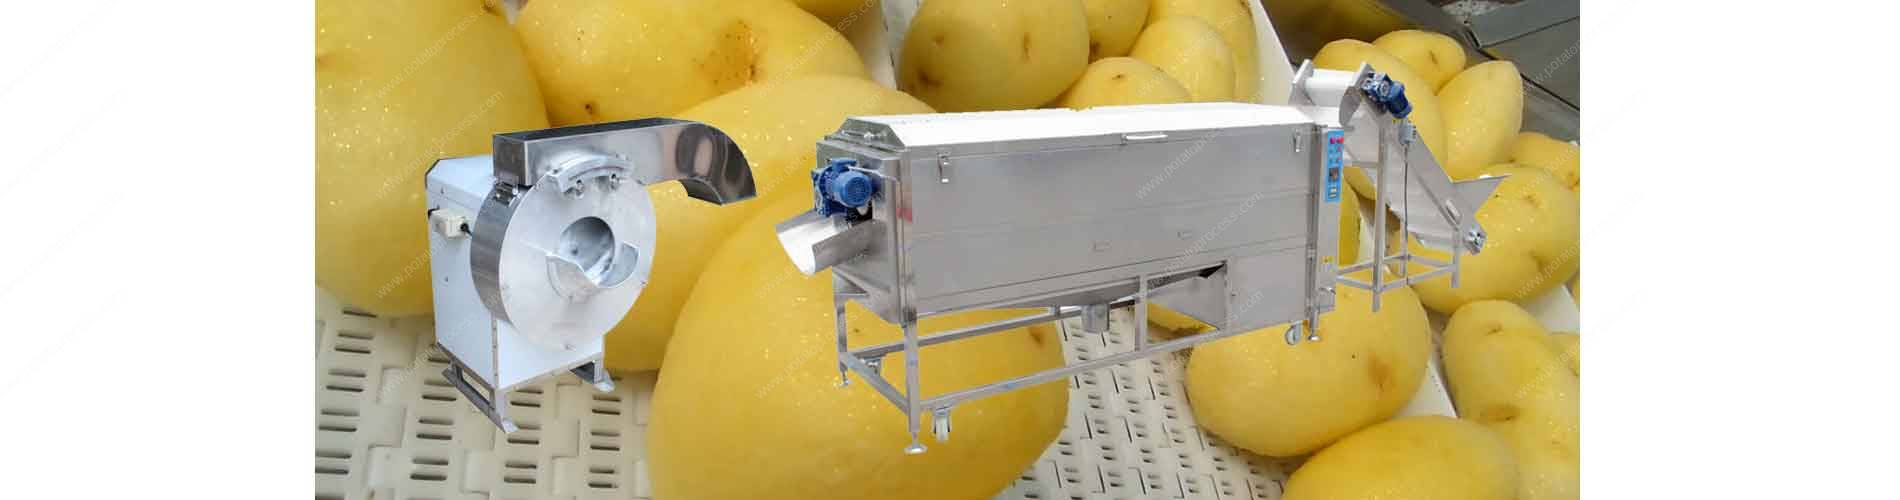 Potato Chips, French Fries Cutting Machine